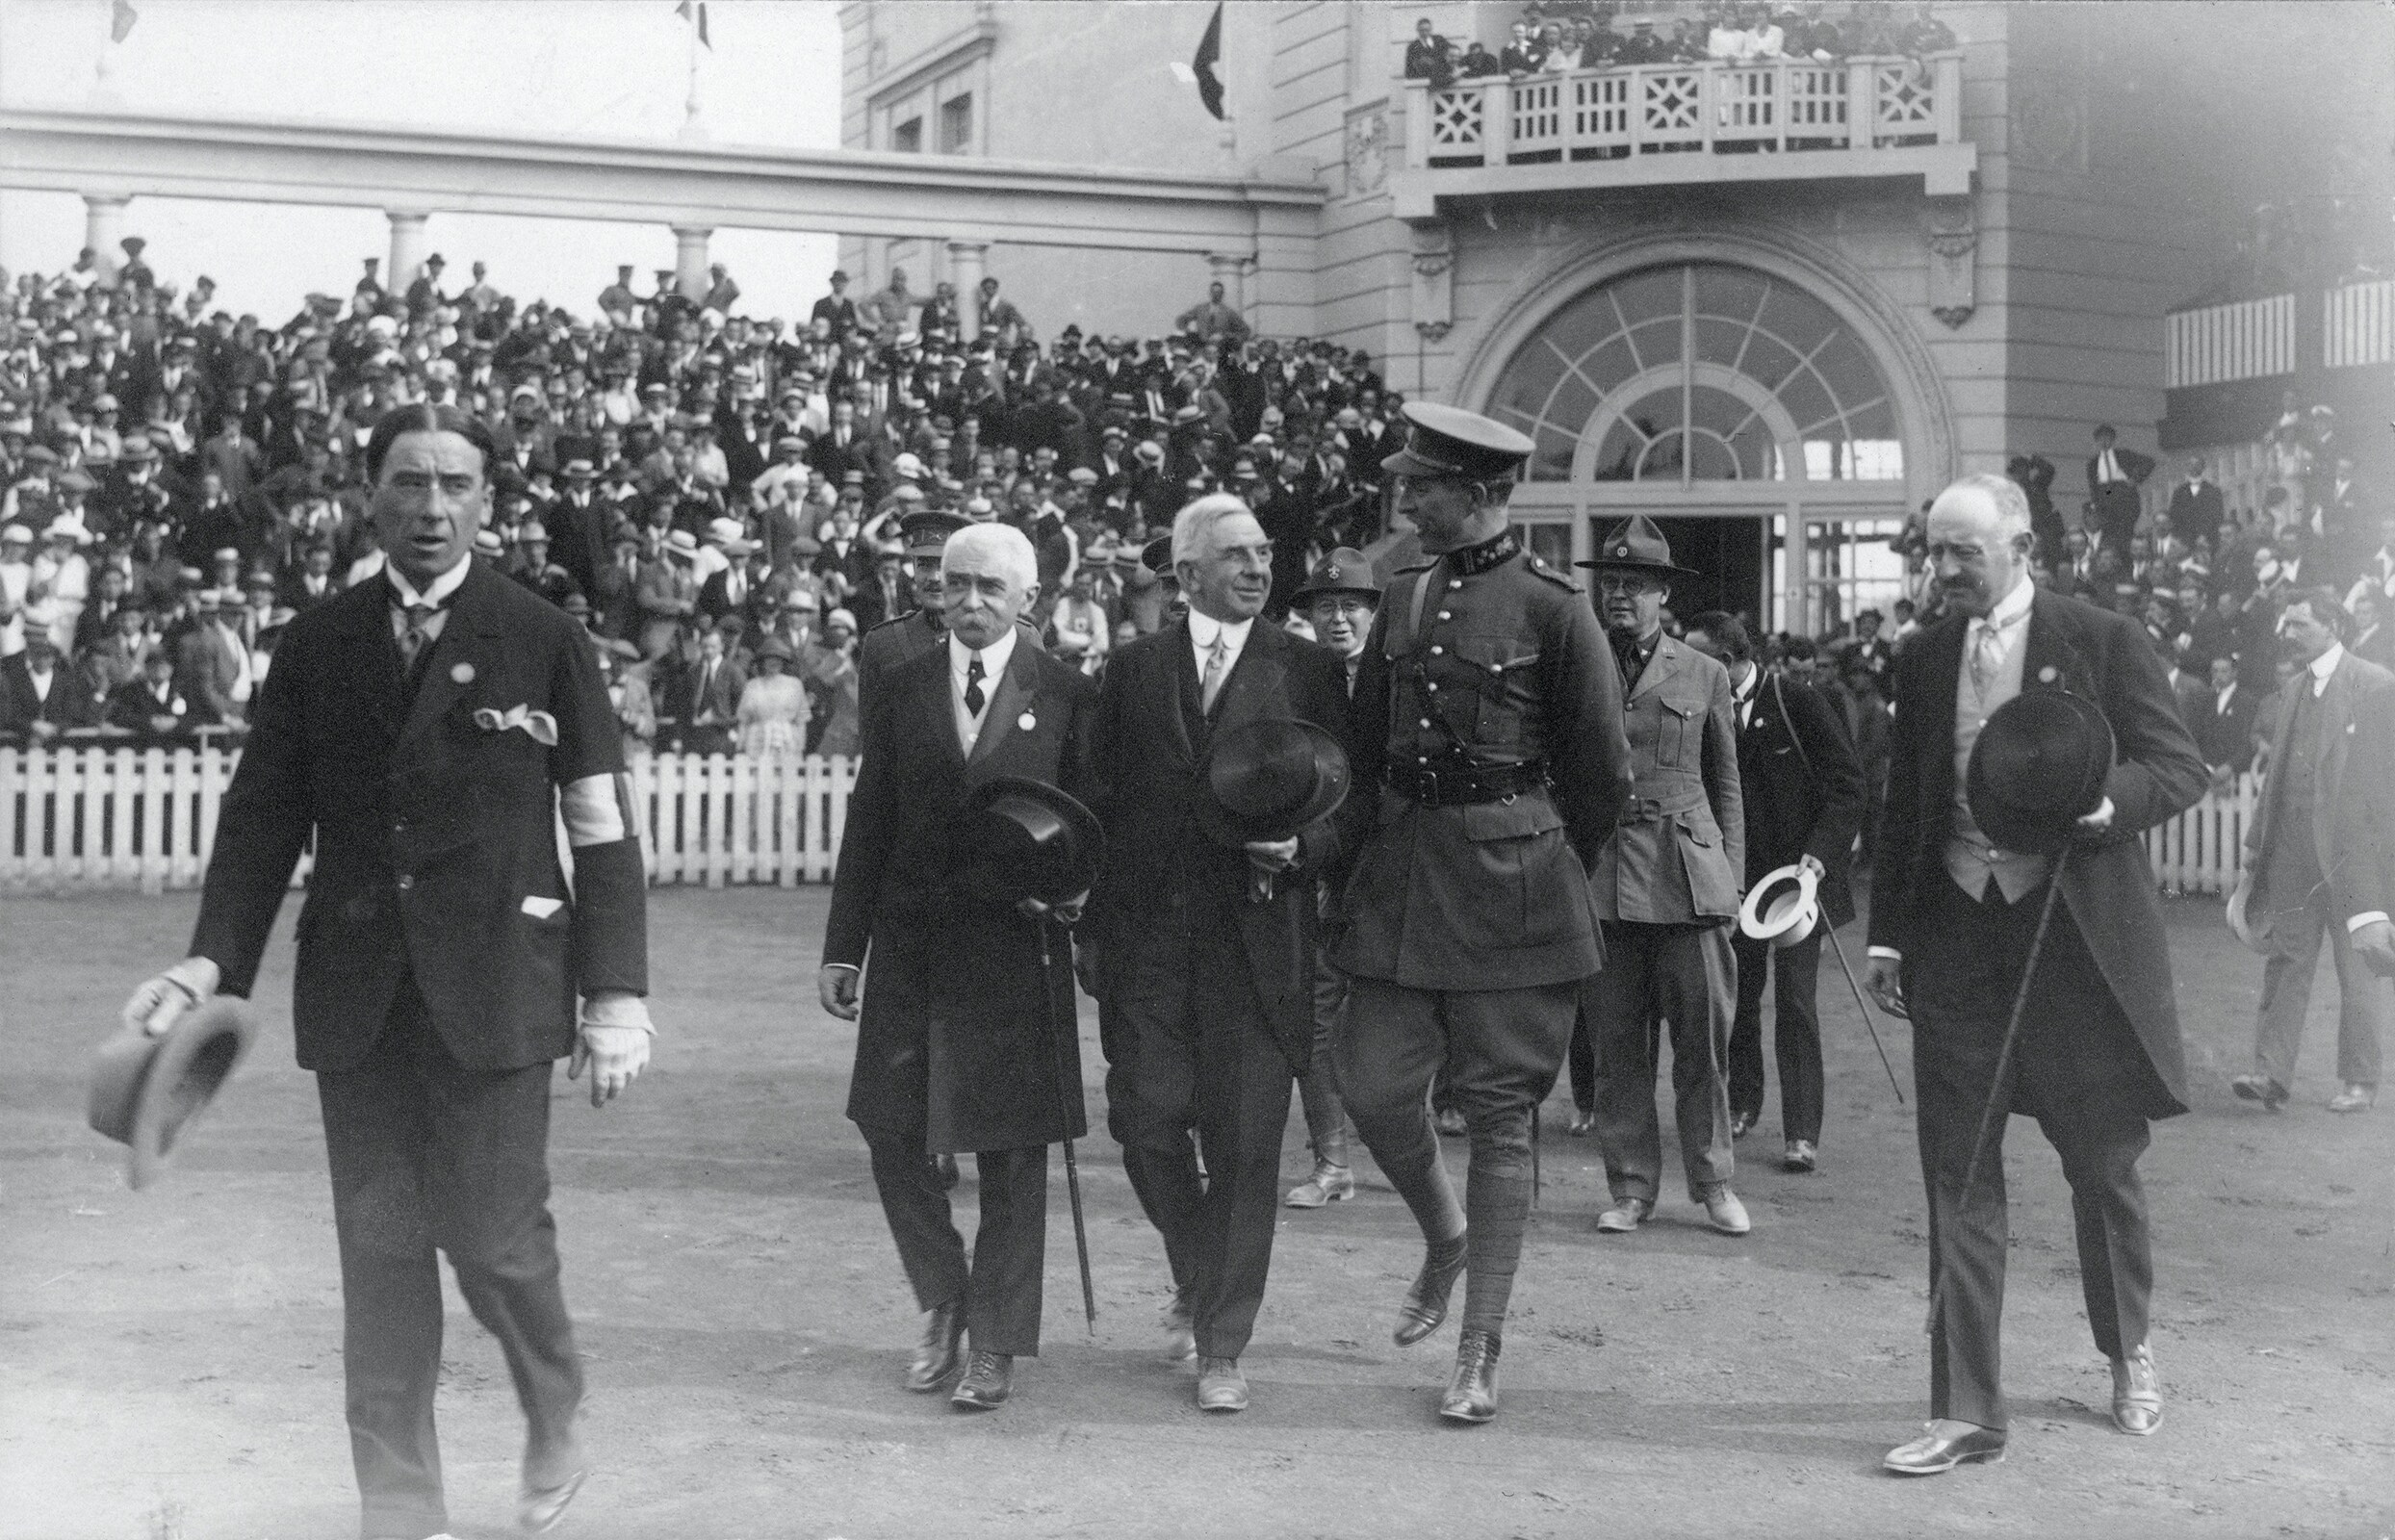 Antwerp 1920 OG - (1st) Alfred Verdyck CE JO, (2nd) Baron Pierre de Coubertin, IOC President, (4th) Albert I, King of Belgium and (5e) Count Henri de Baillet-Latour, Belgium (BEL) IOC and Anvers 1920 OCOG Président, enter the Olympic Stadium.